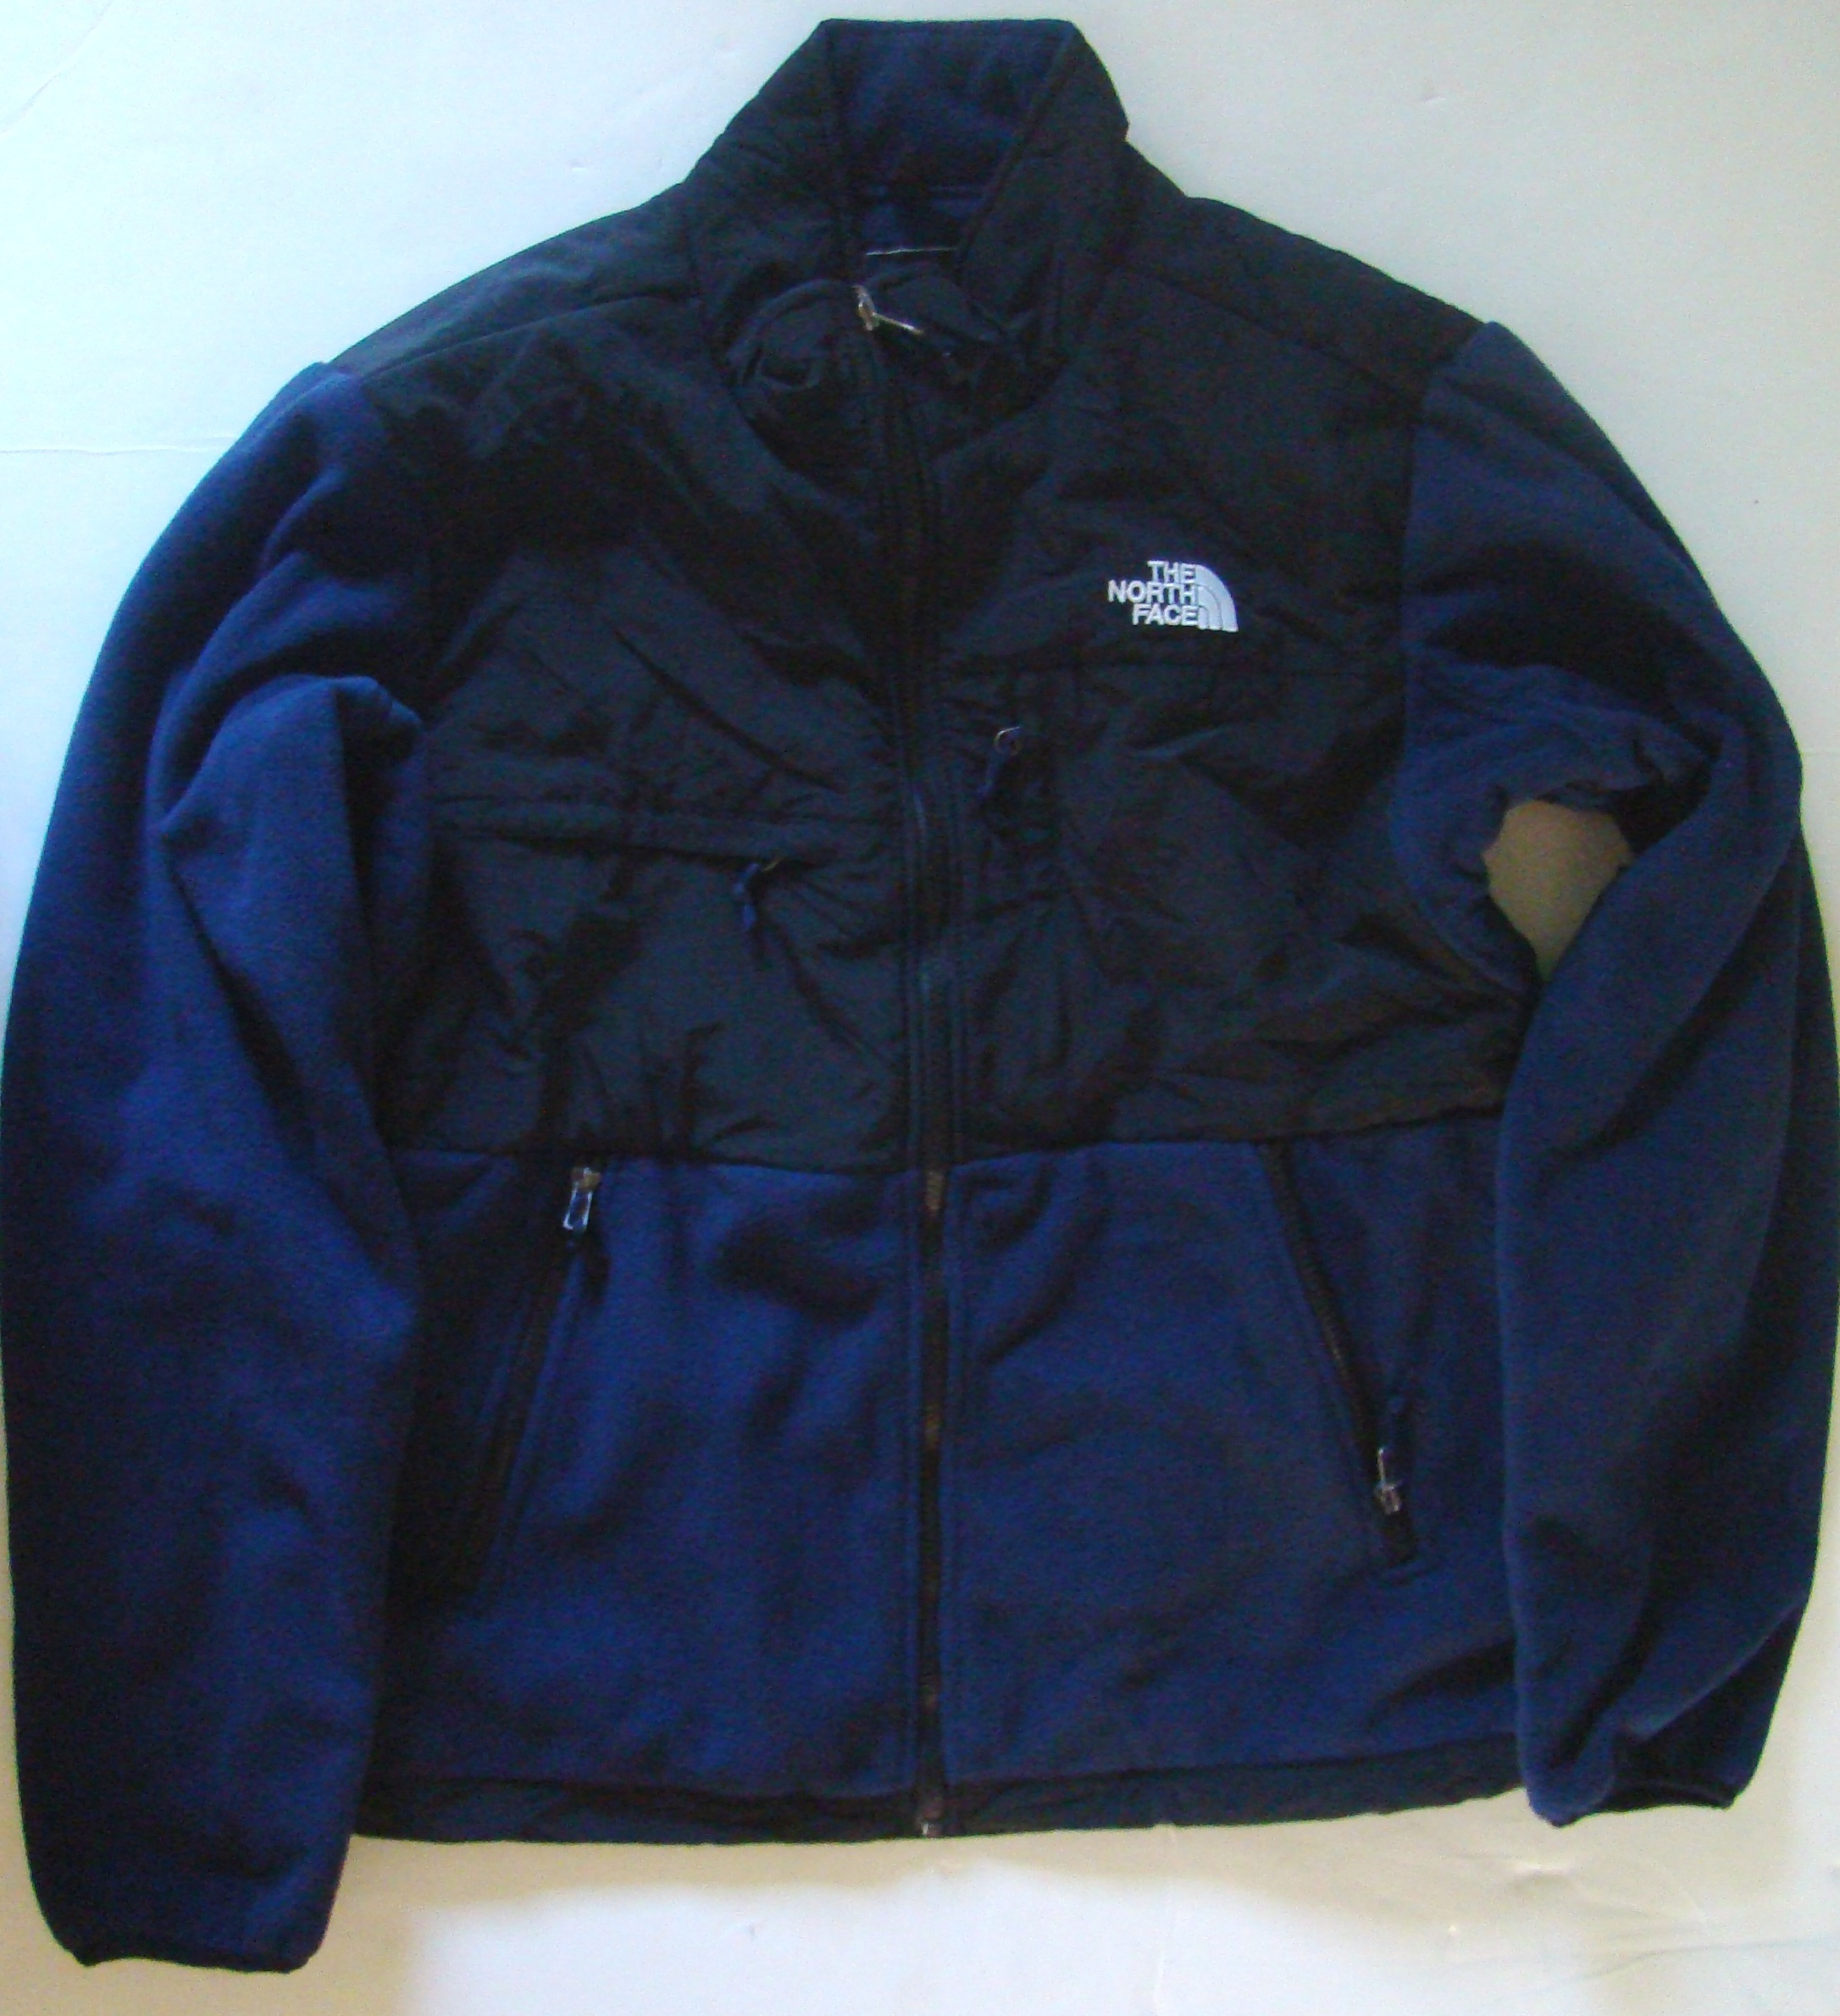 Mens navy blue   Black large denali jacket (7)